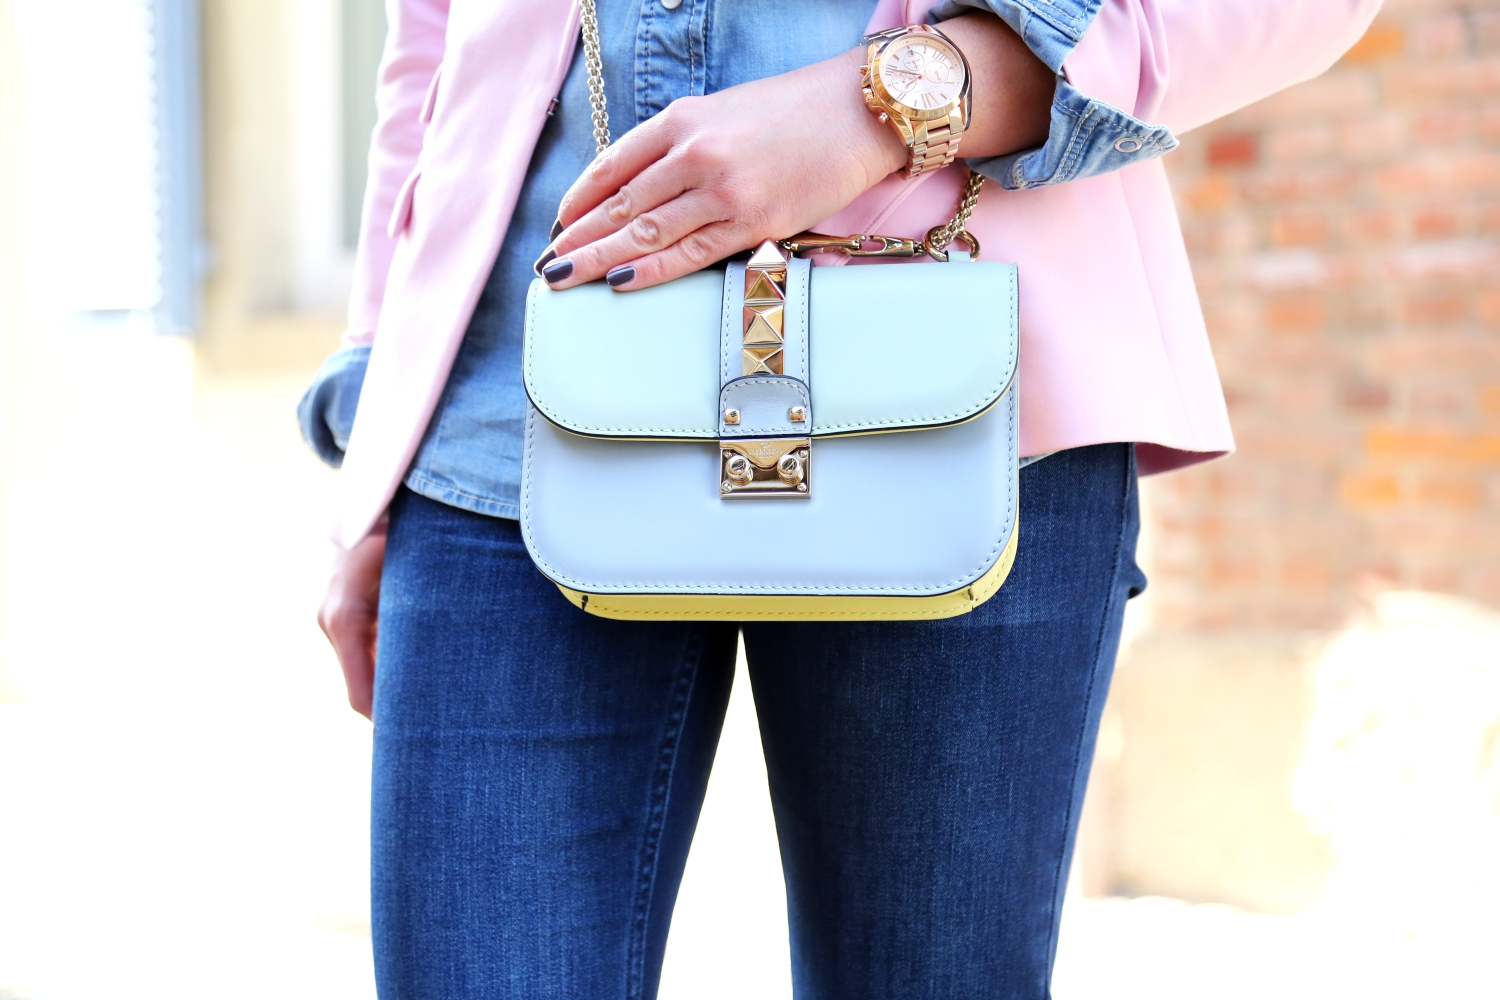 92f7f9e4627 outfit-valentino-garavani-glam-lock-bag-watercolor-pastels-